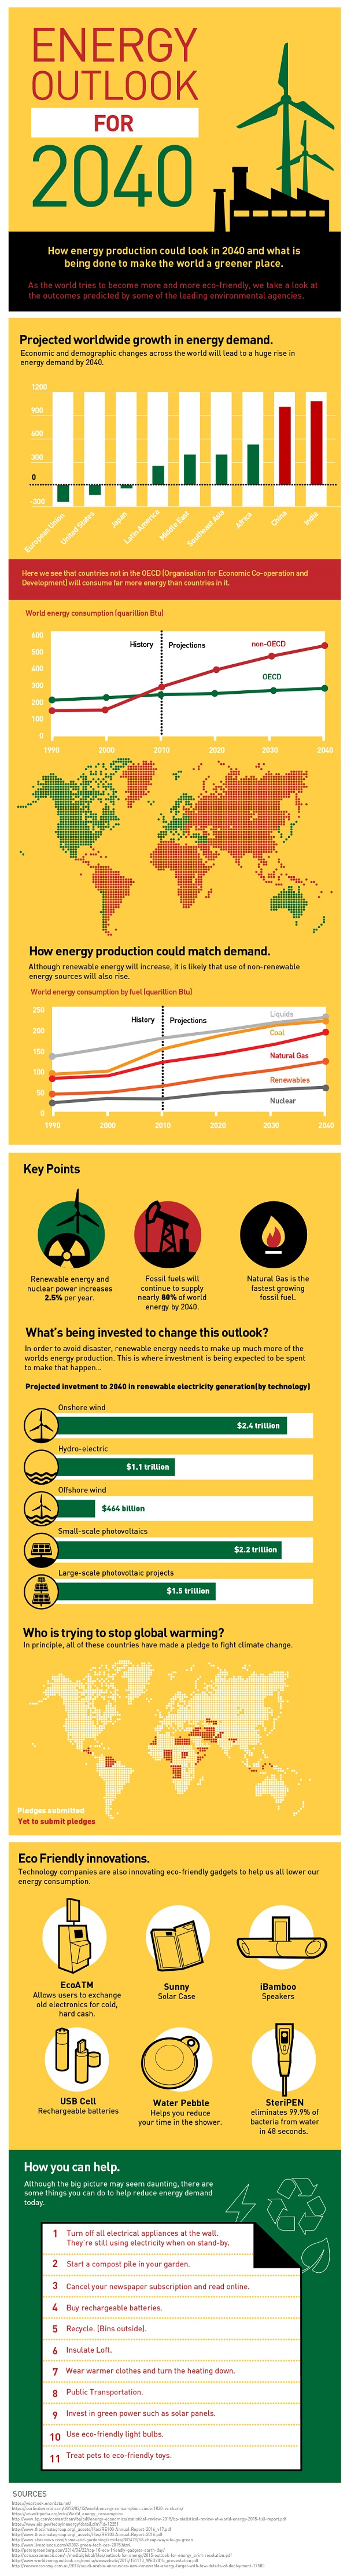 Energy Outlook For 2040 Infographic